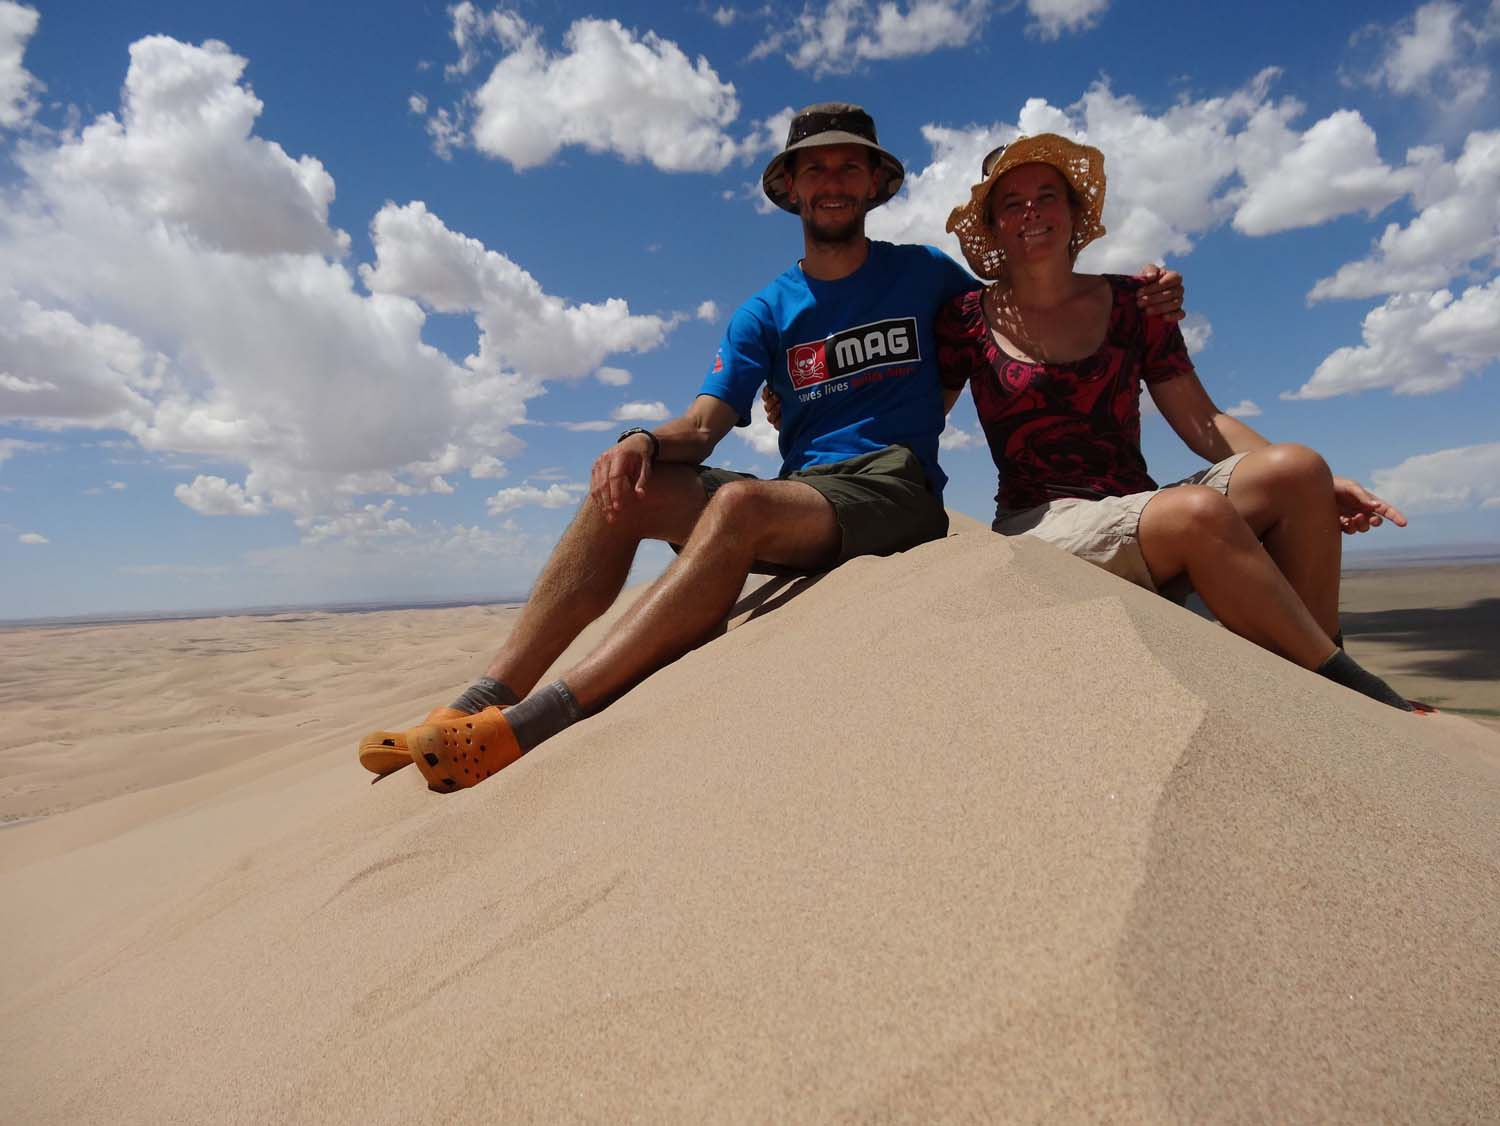 stunning views are our reward after a slow hike to the top of the biggest sand dune